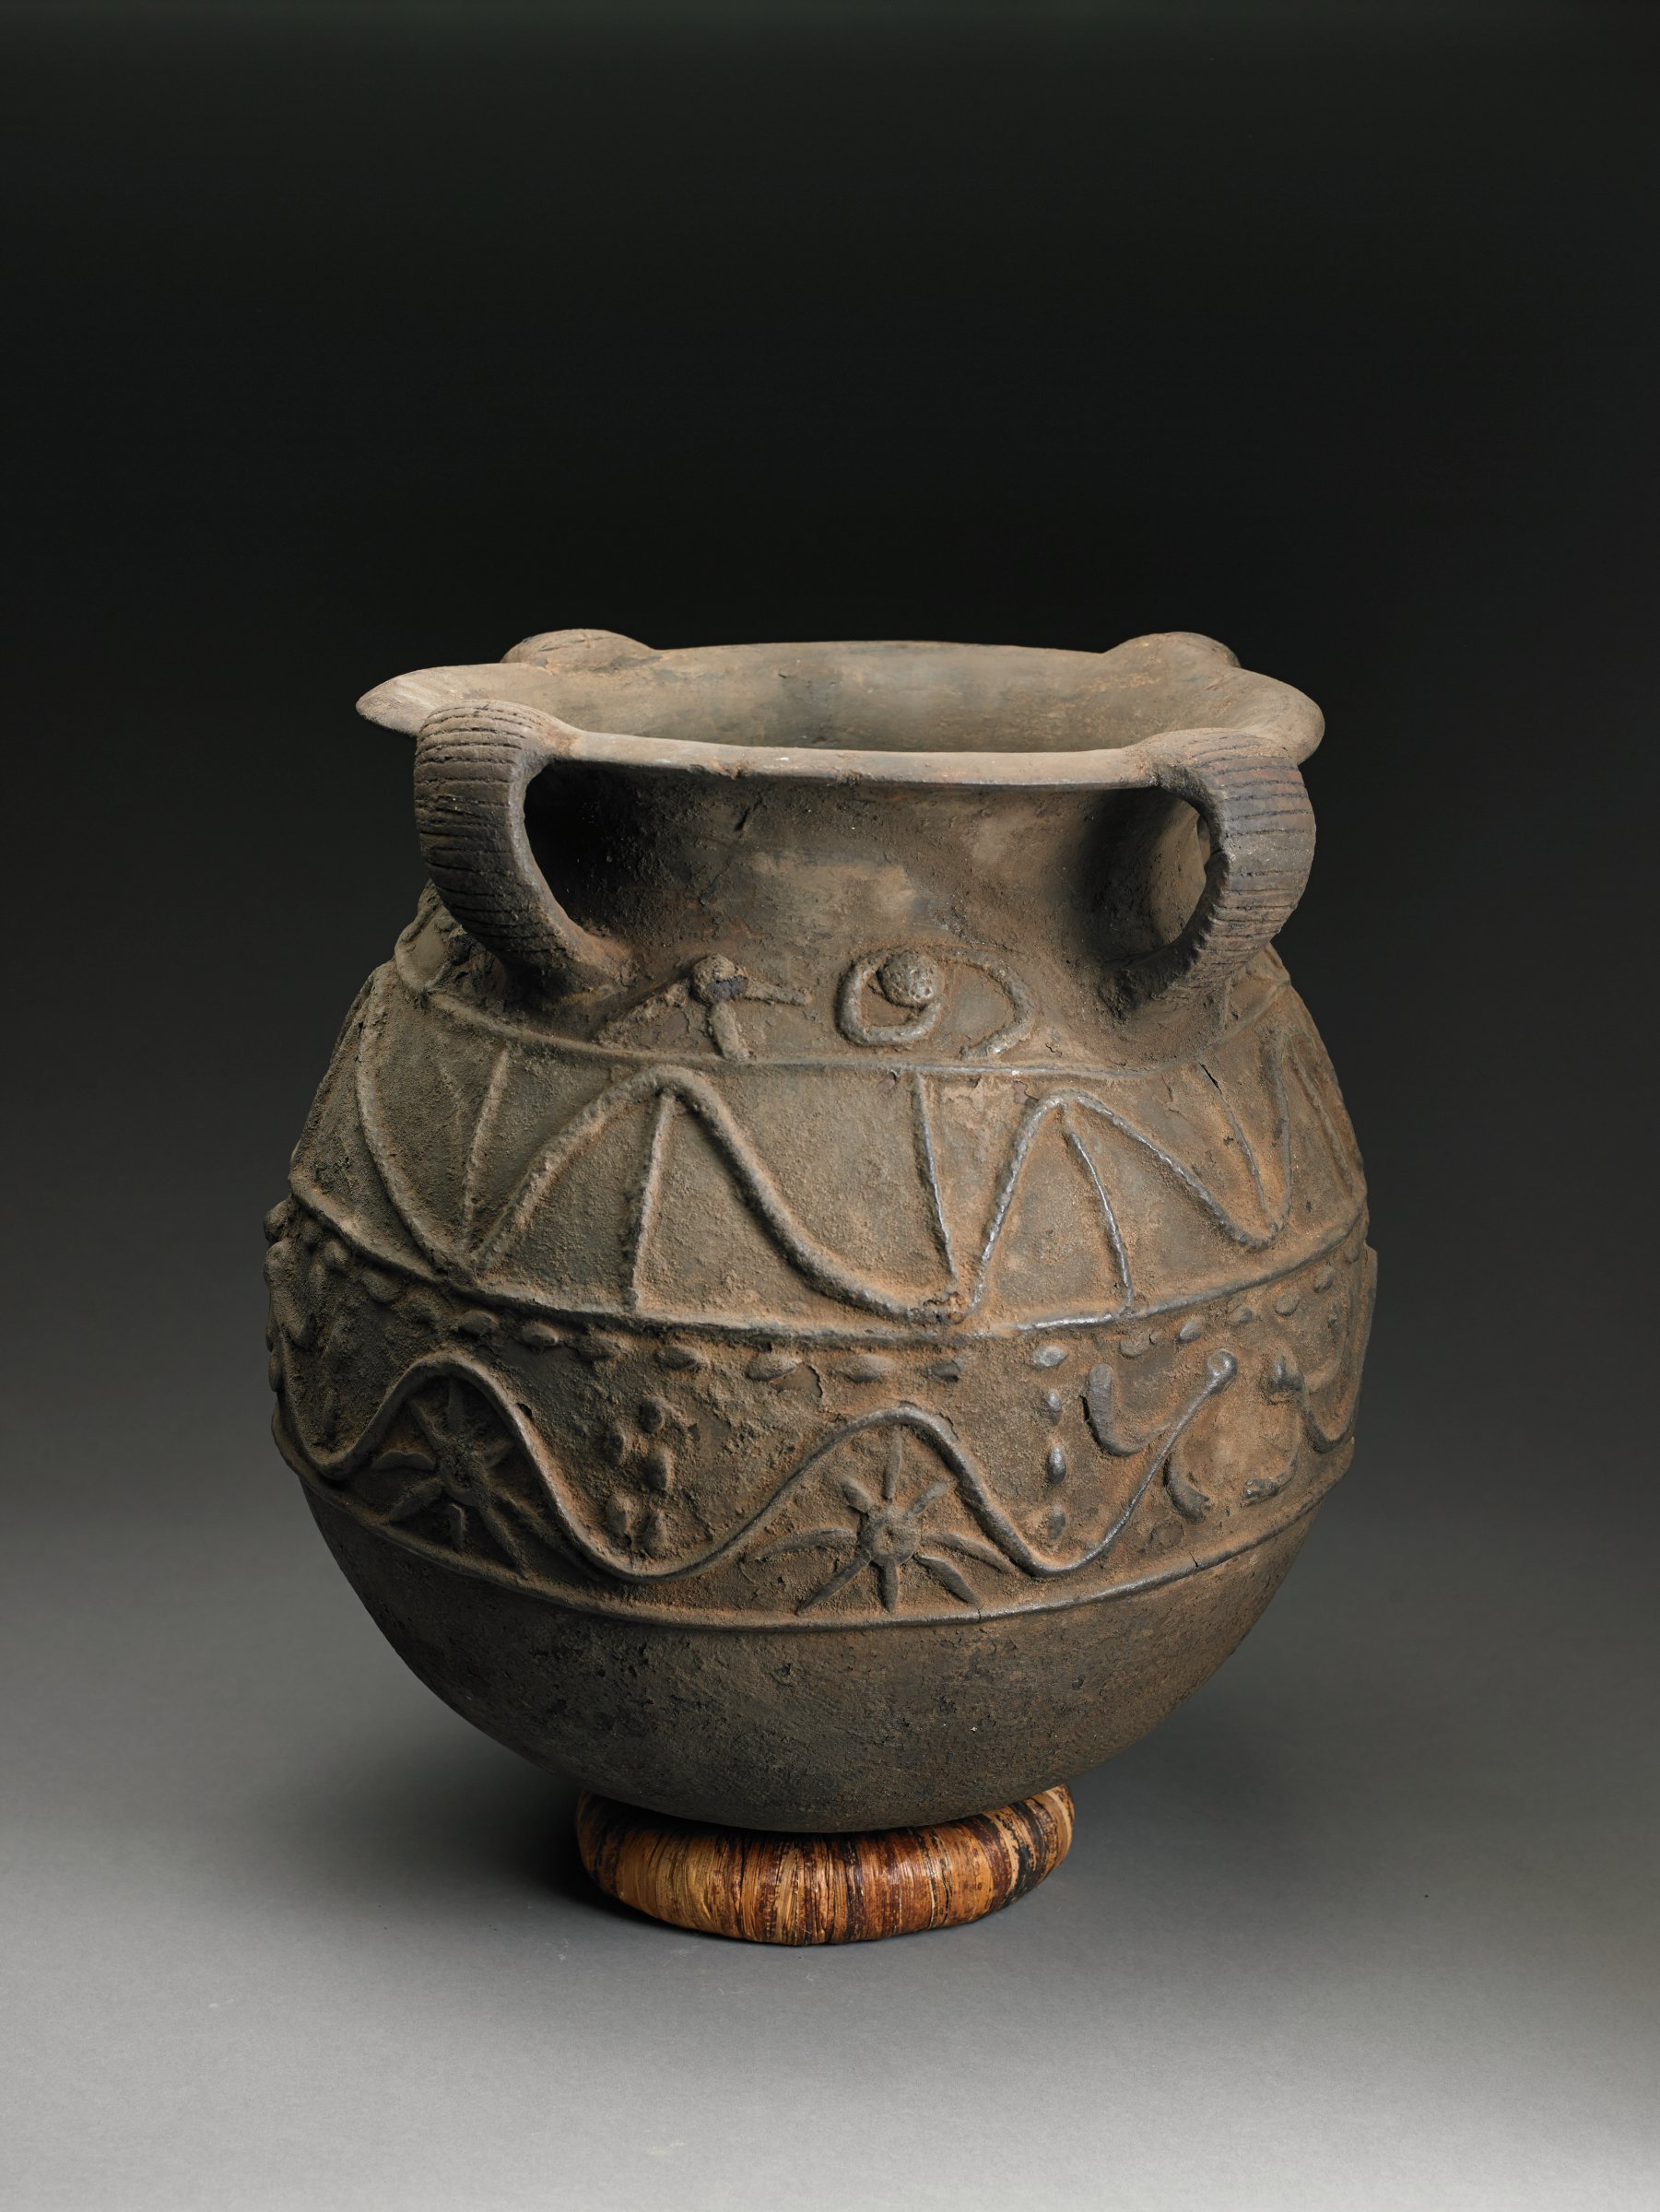 Blackish-brown globular vessel has neck and curved rim; four convex bands connect top of rim back to body of vessel, forming handles. Appliqued serpentine animals interspersed with sunburst or spider forms, raised ovals, and raised vertical lines adorn body of vessel.